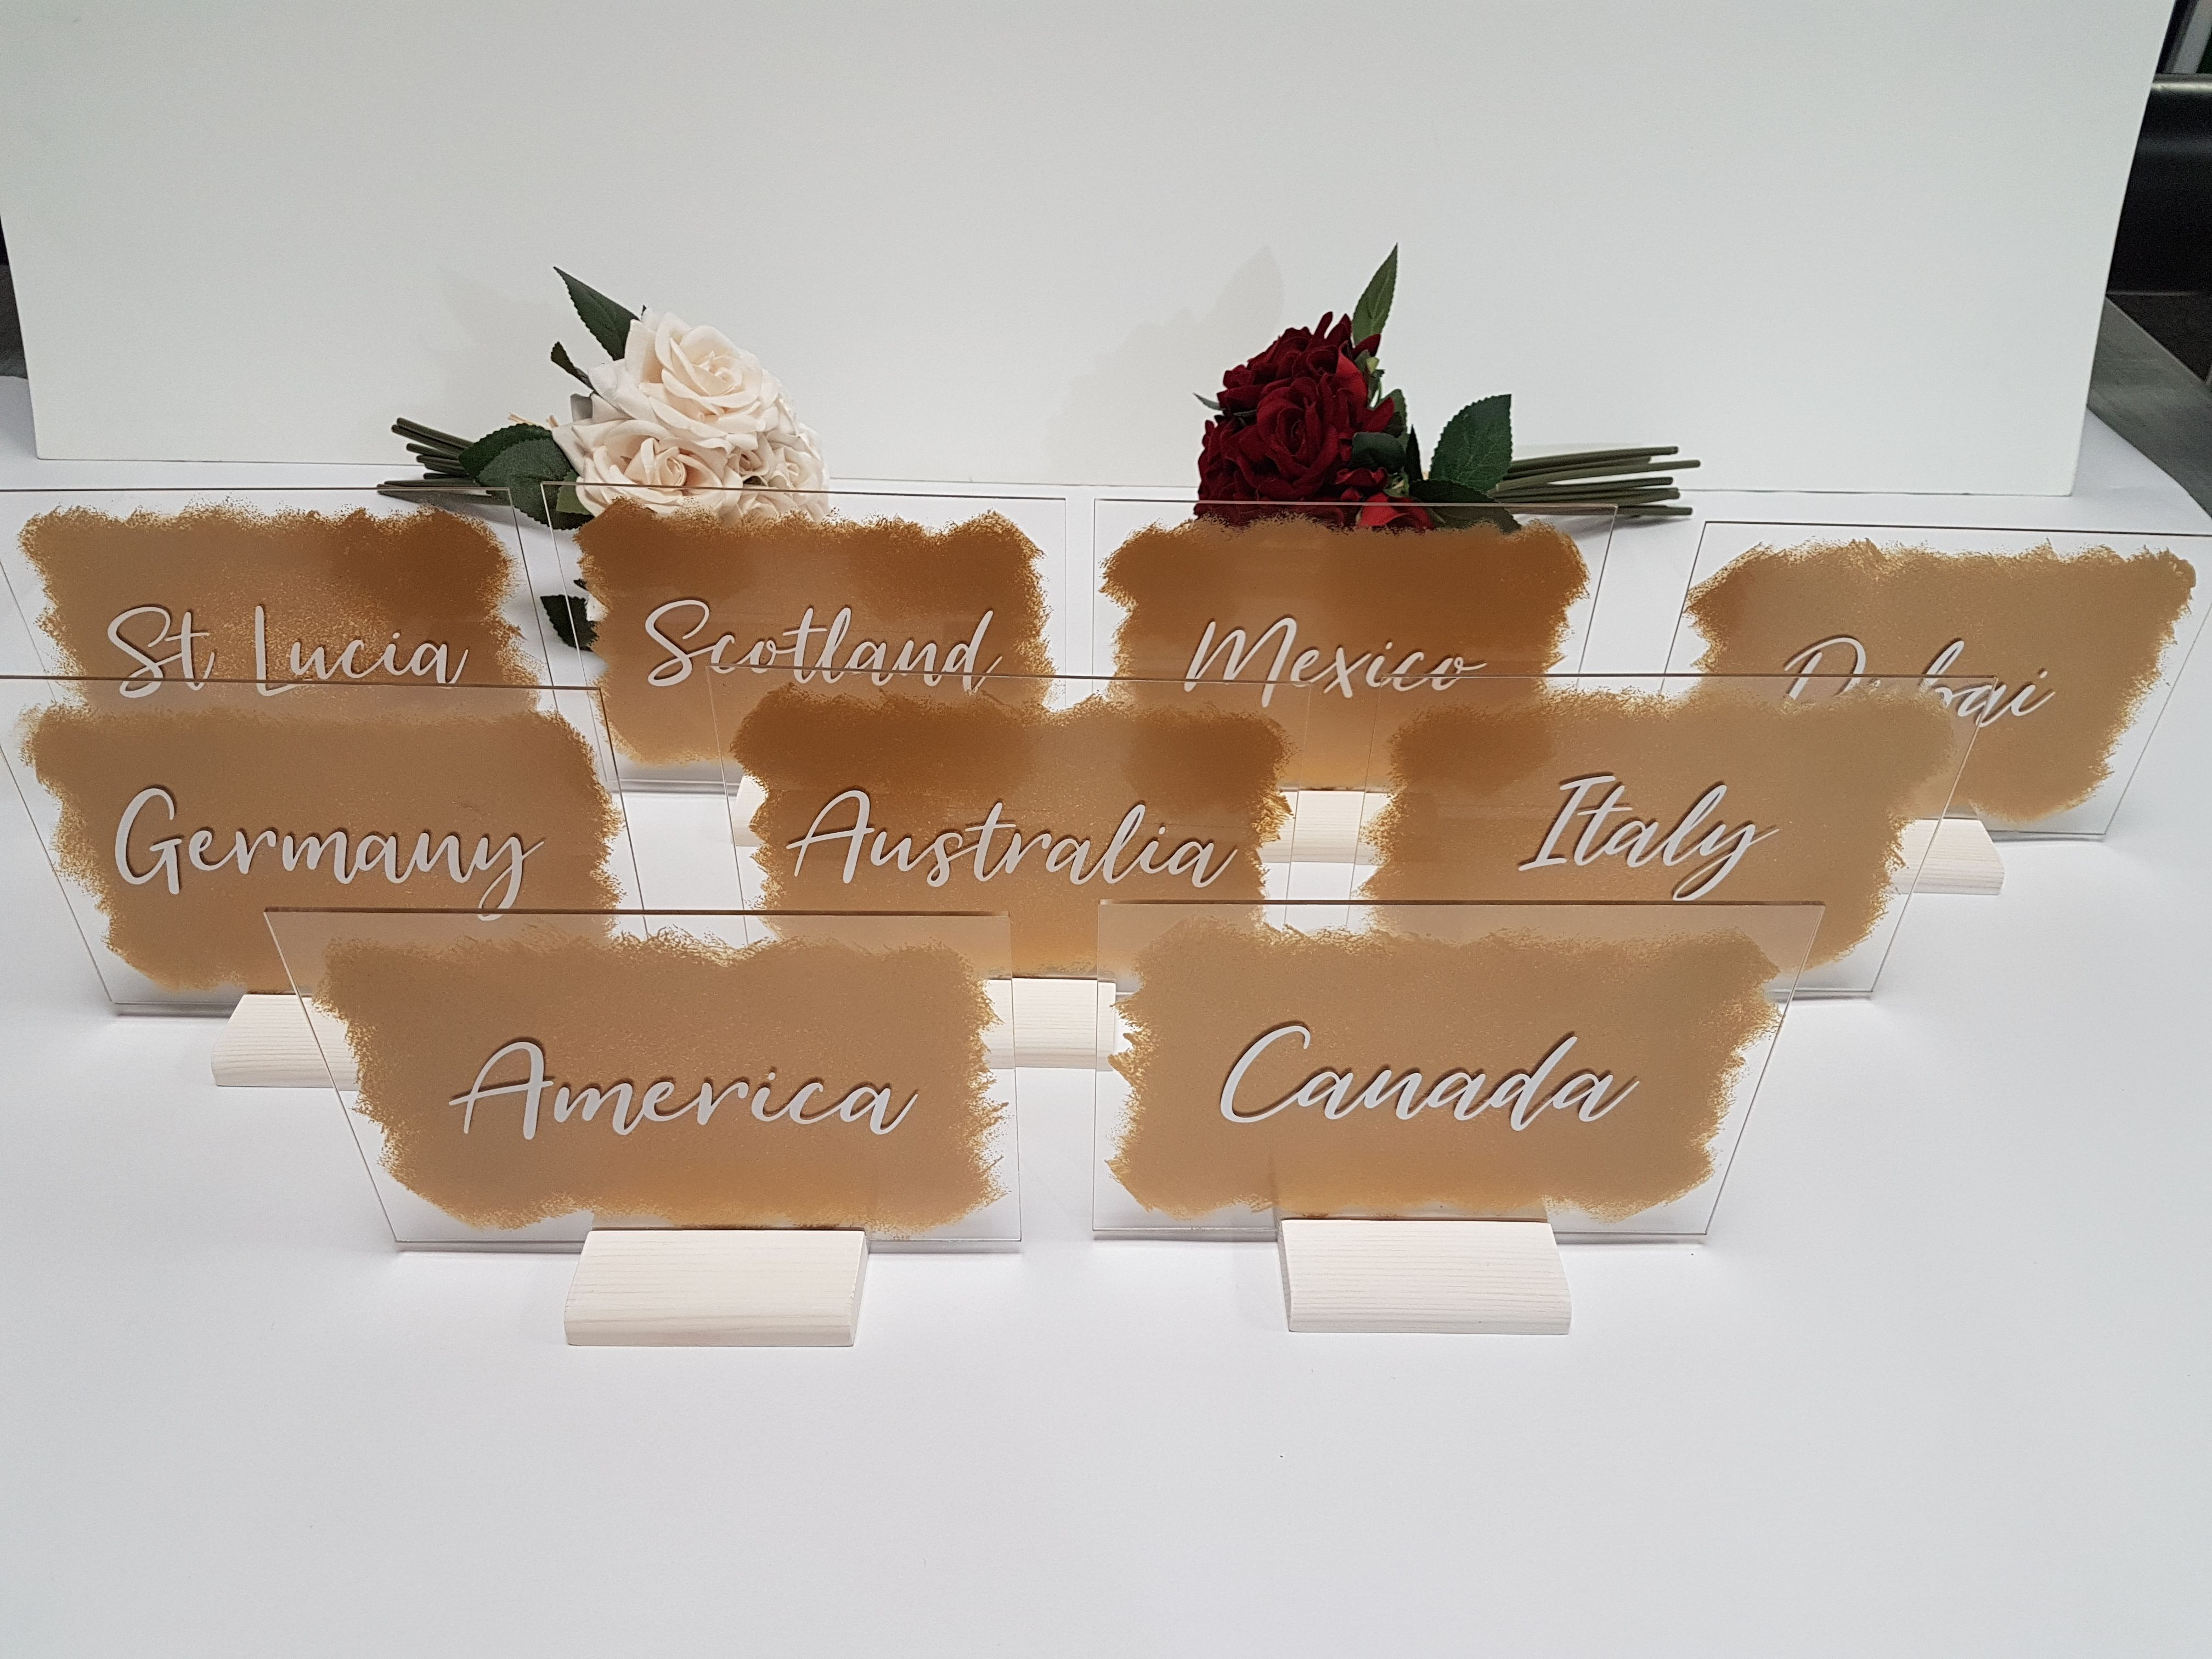 Painted Acrylic Table Names / Numbers A5 Acrylic table